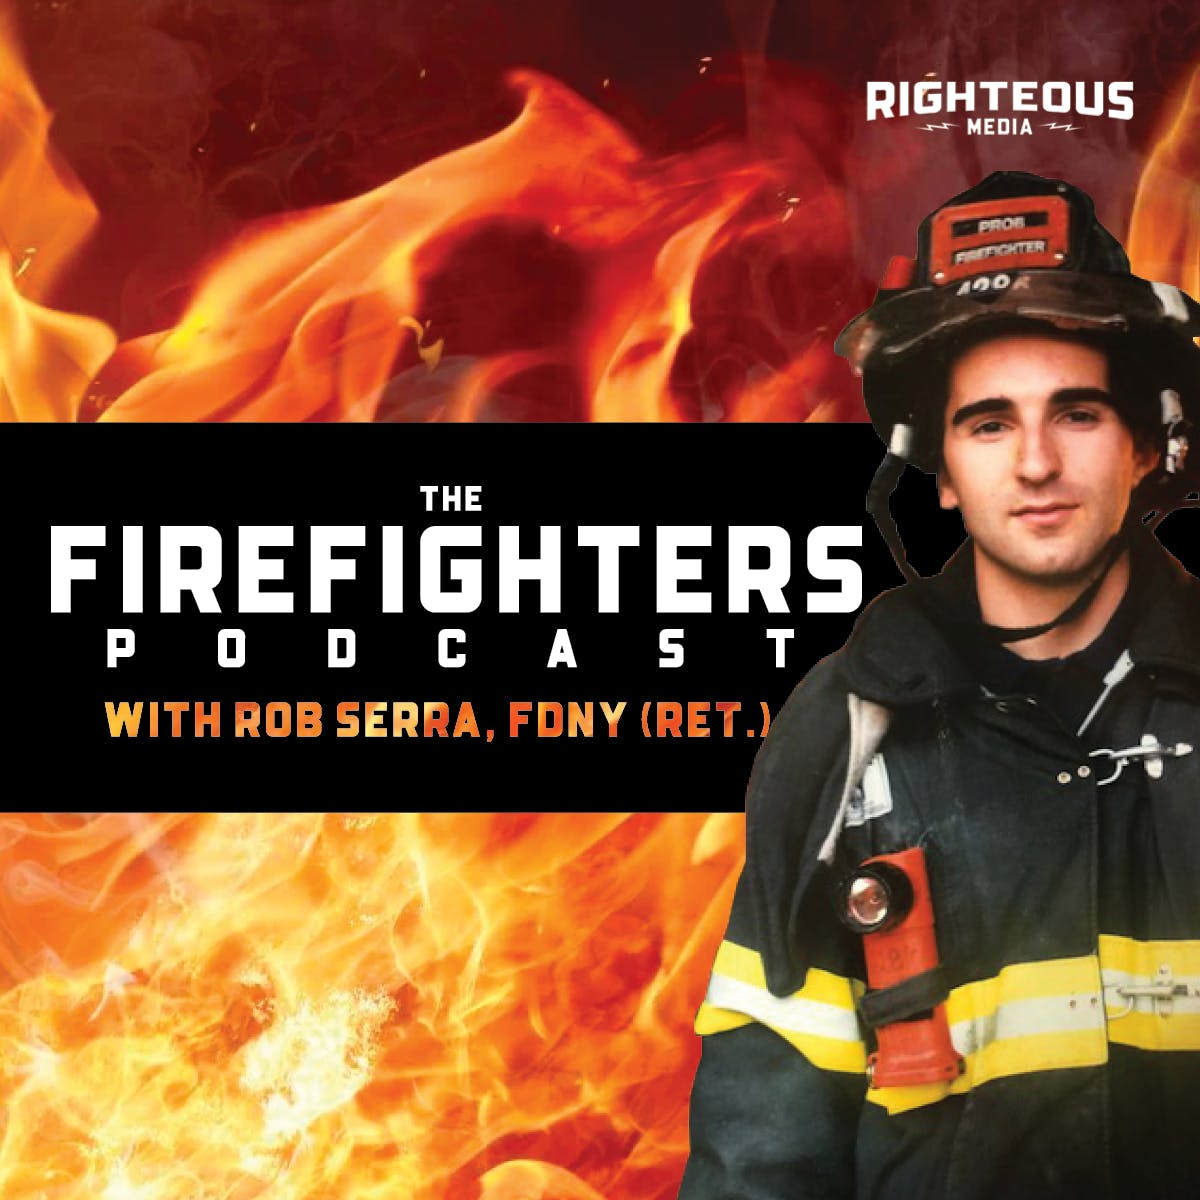 9/11 HERO HOSTS NEW FIREFIGHTERS PODCAST